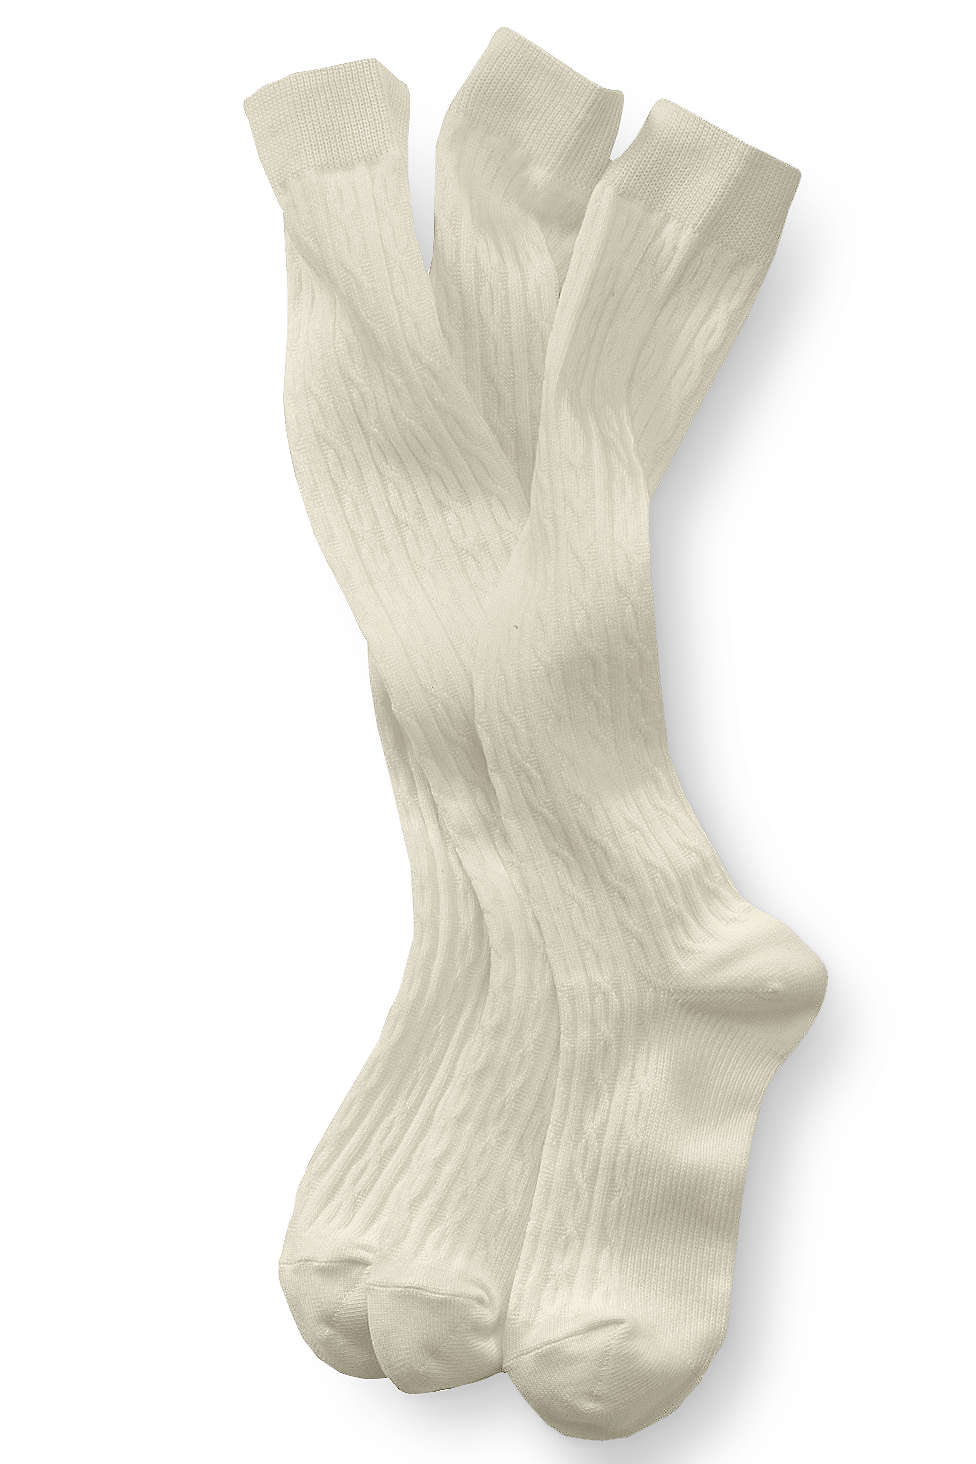 94704ea64 School Uniform Girls Solid Cable Knee Socks from Lands' End